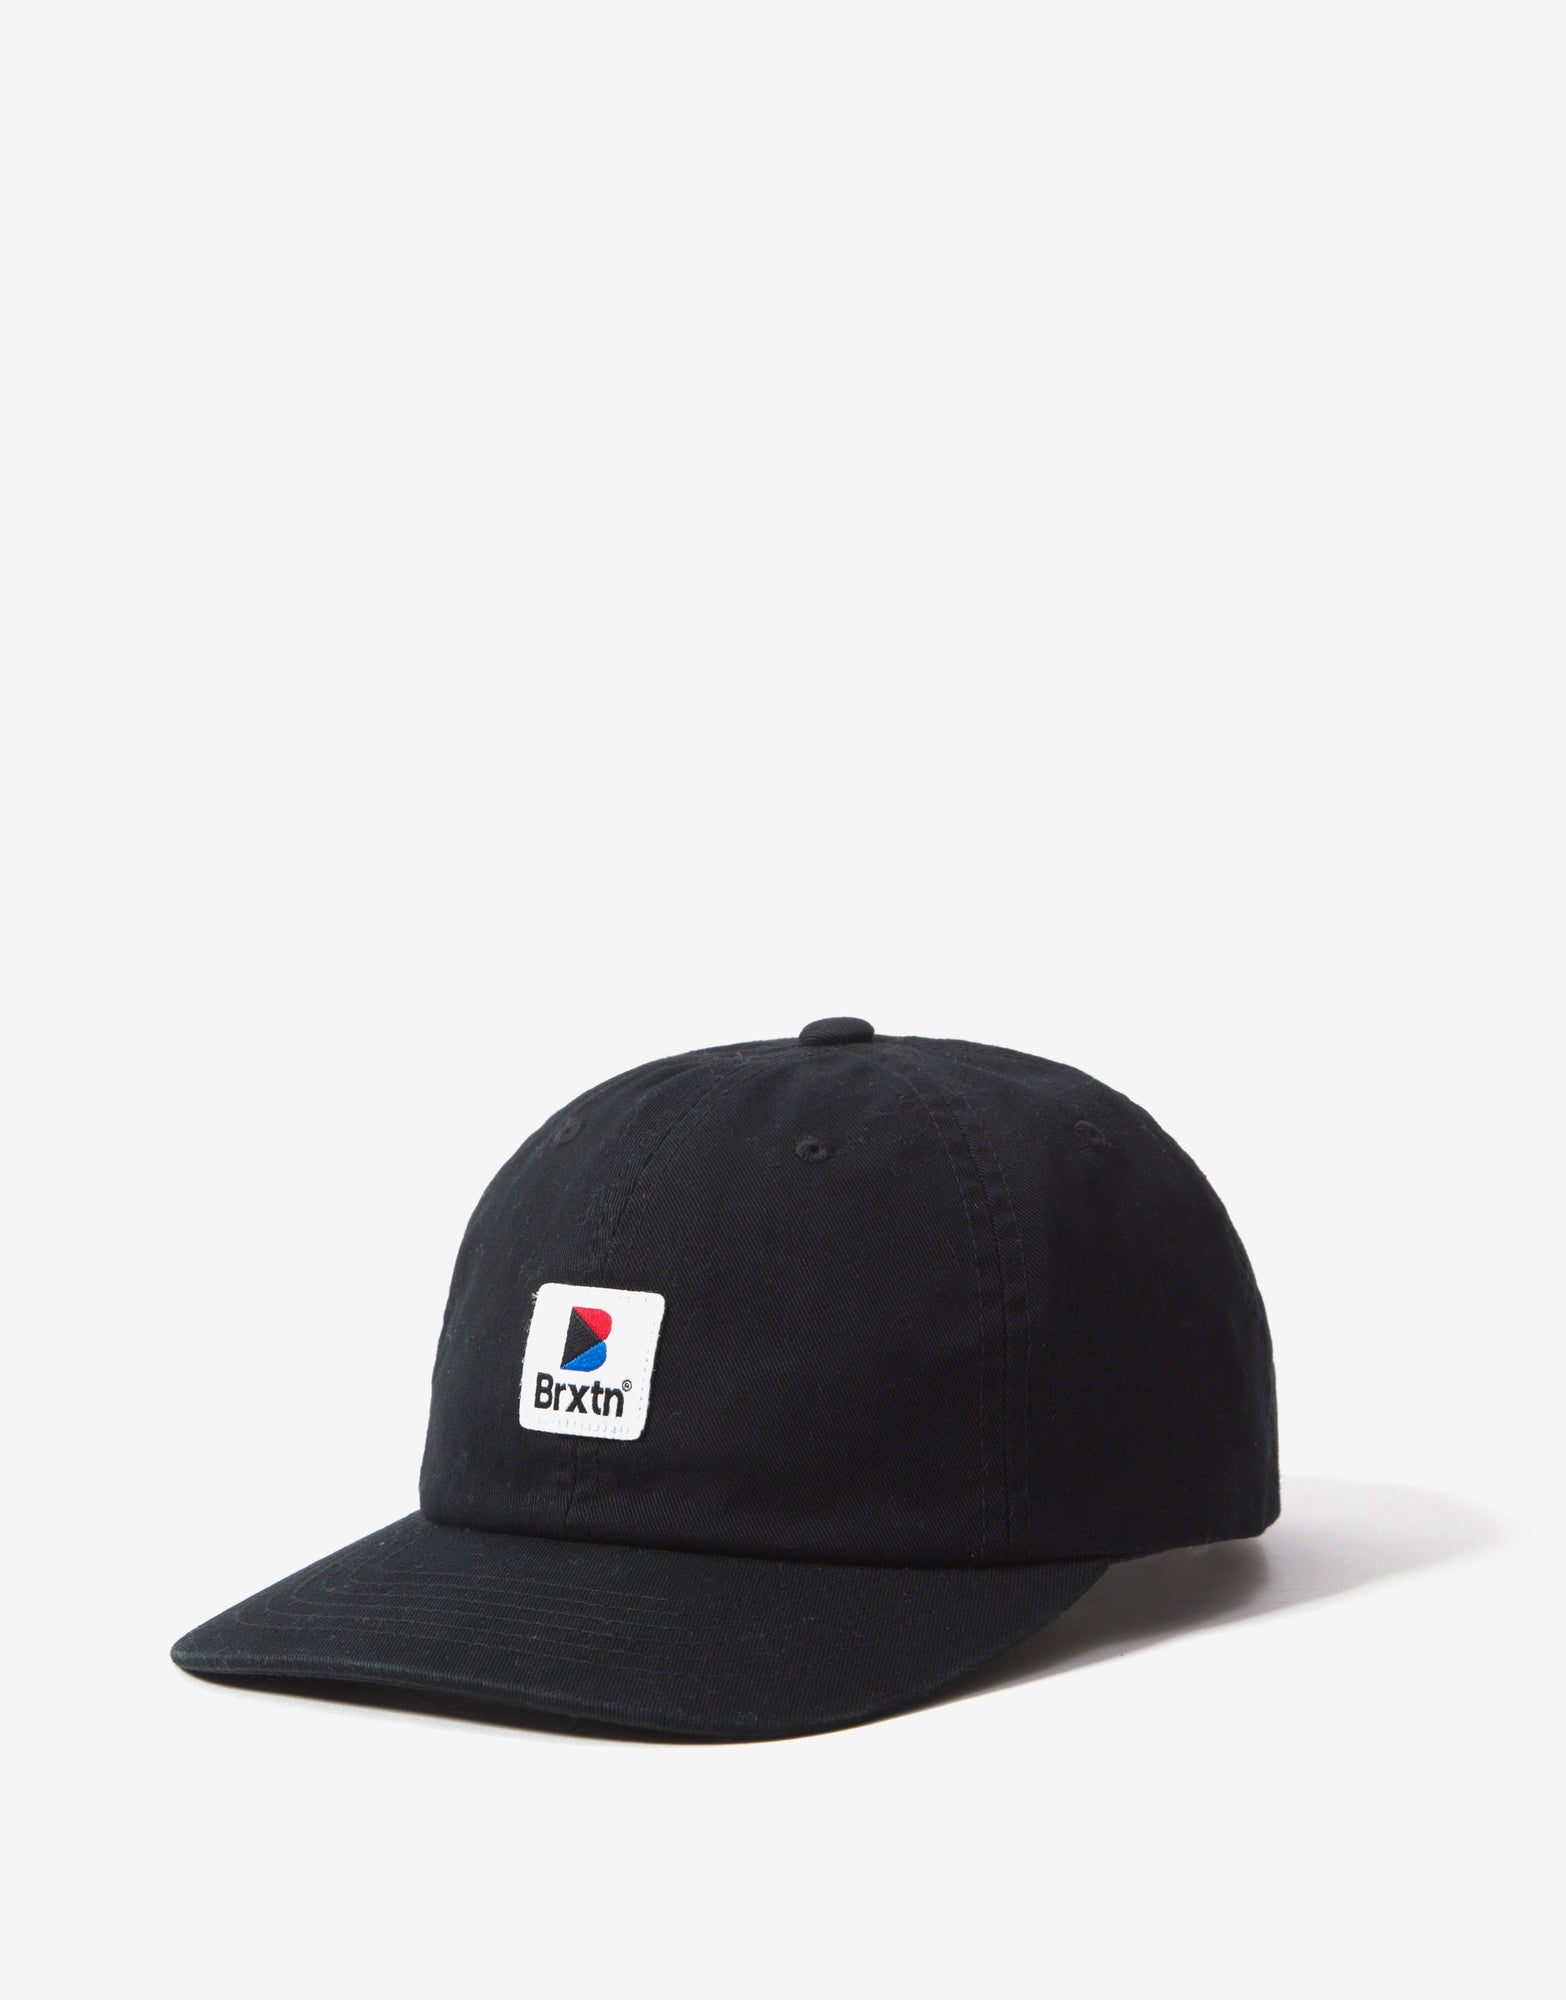 Brixton Crest C MP Snapback - Black